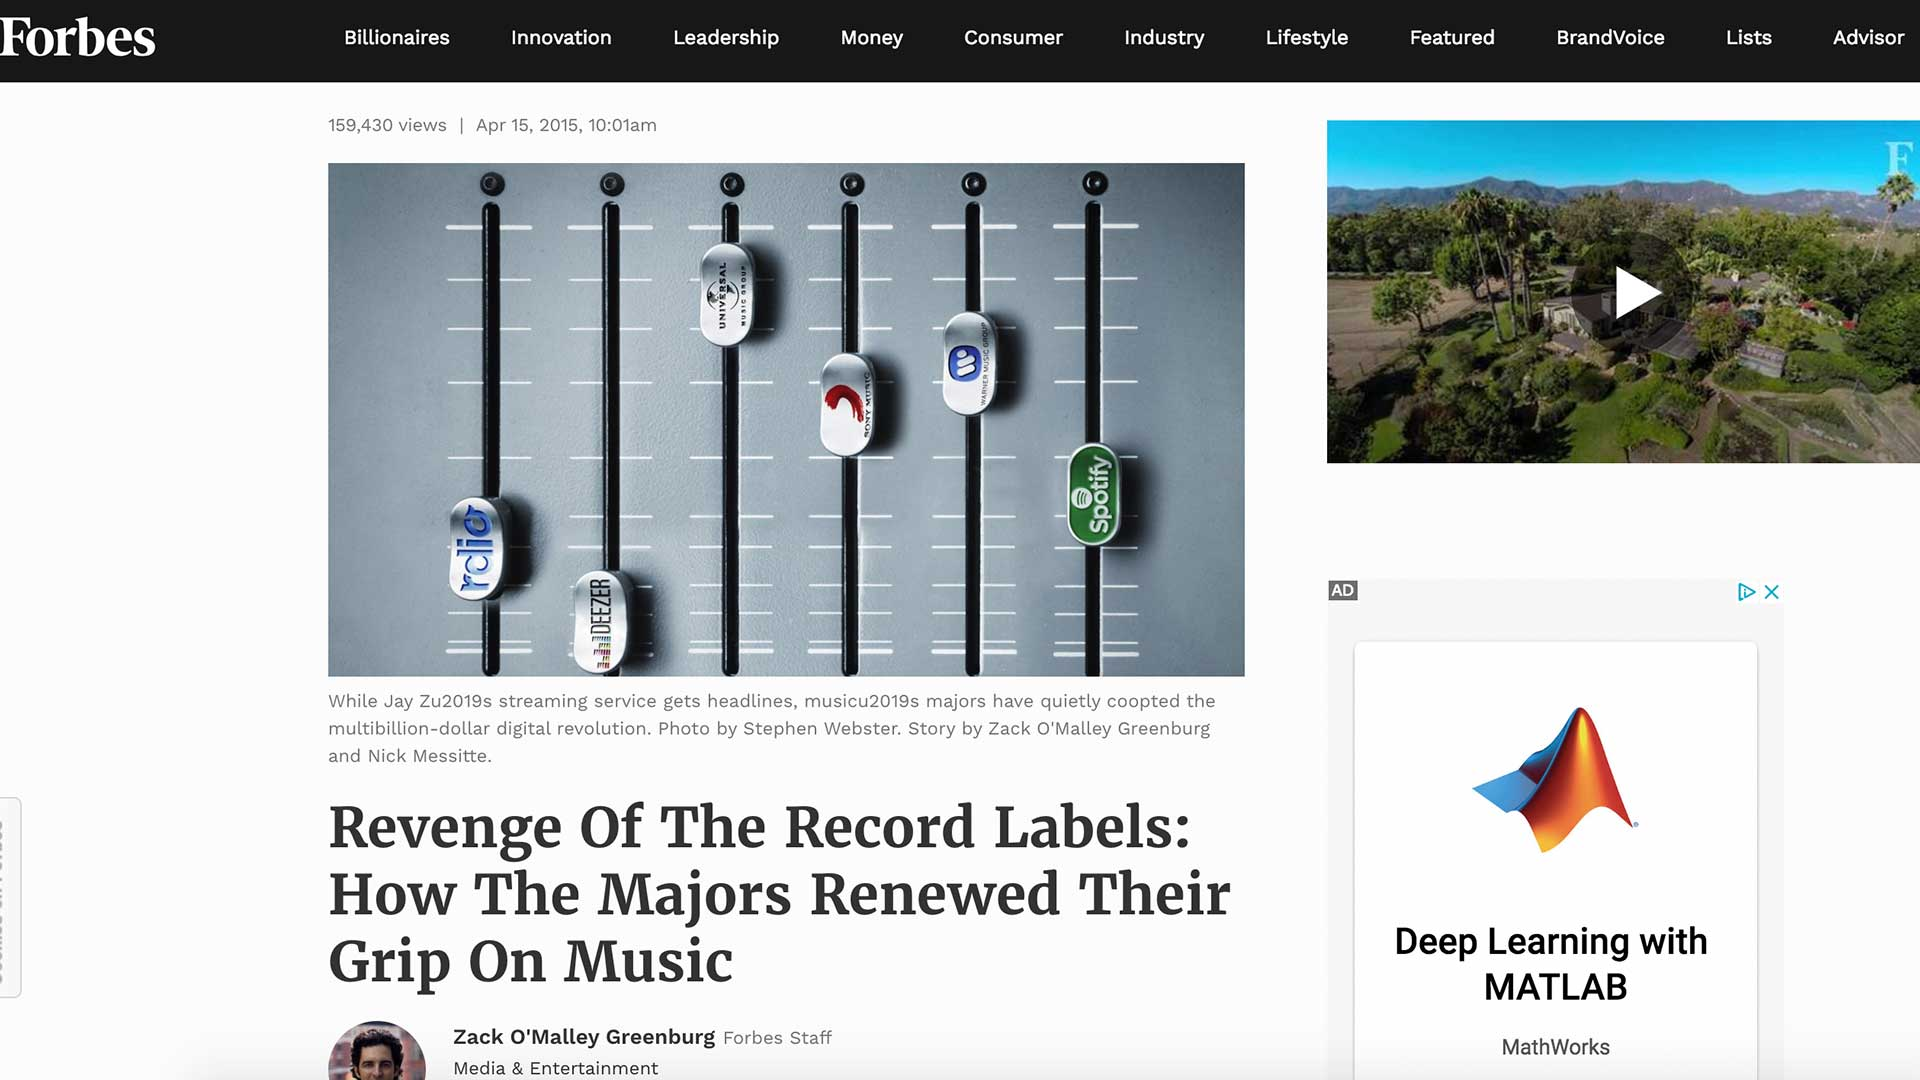 Fairness Rocks News Revenge Of The Record Labels: How The Majors Renewed Their Grip On Music